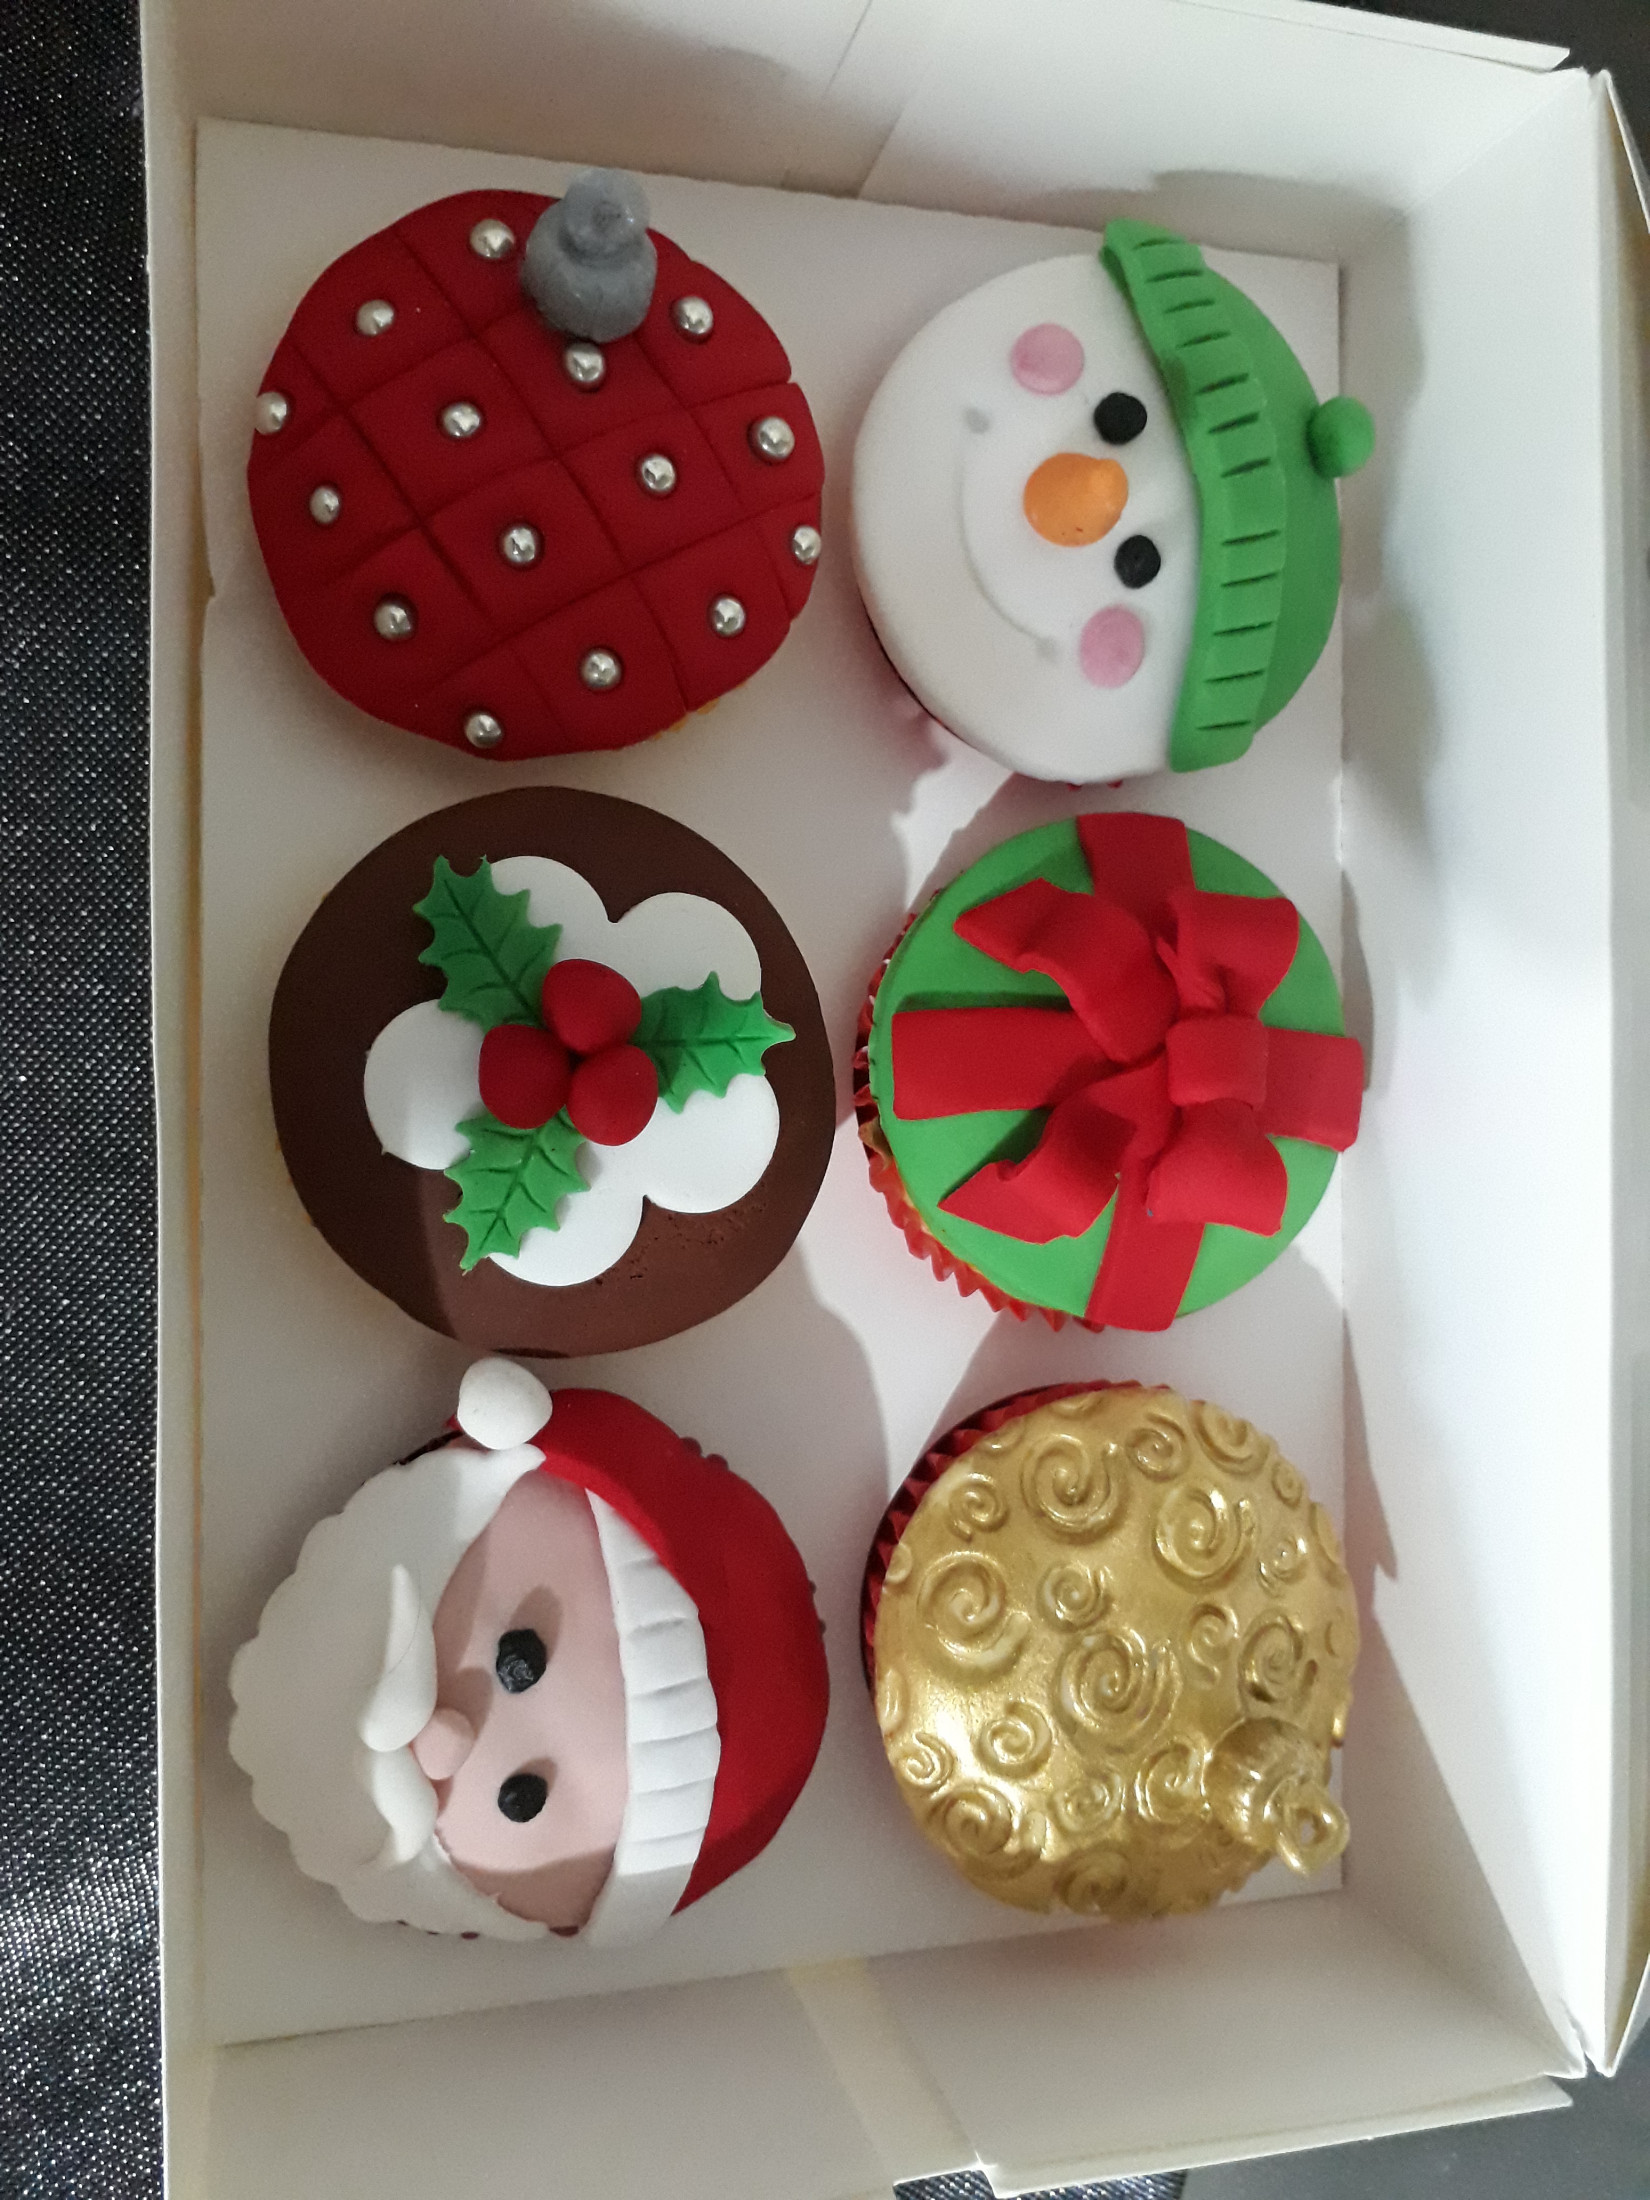 Cake Decorating - Learn to Decorate Christmas Cupcakes